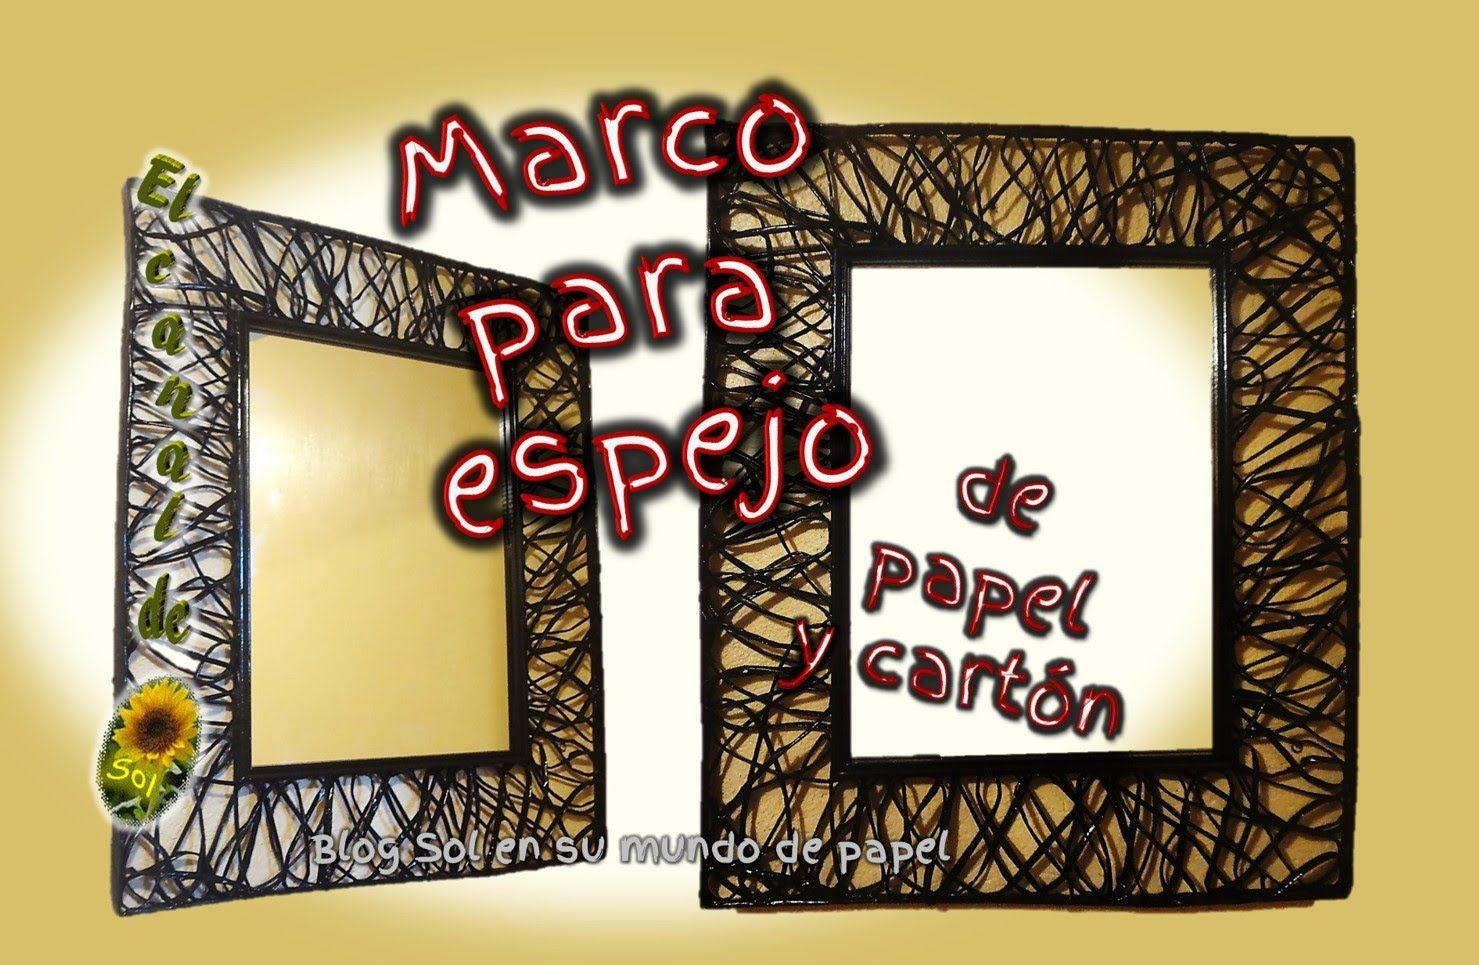 MARCO PARA ESPEJO DE PAPEL Y CARTÓN - Mirror frame for paper and ...